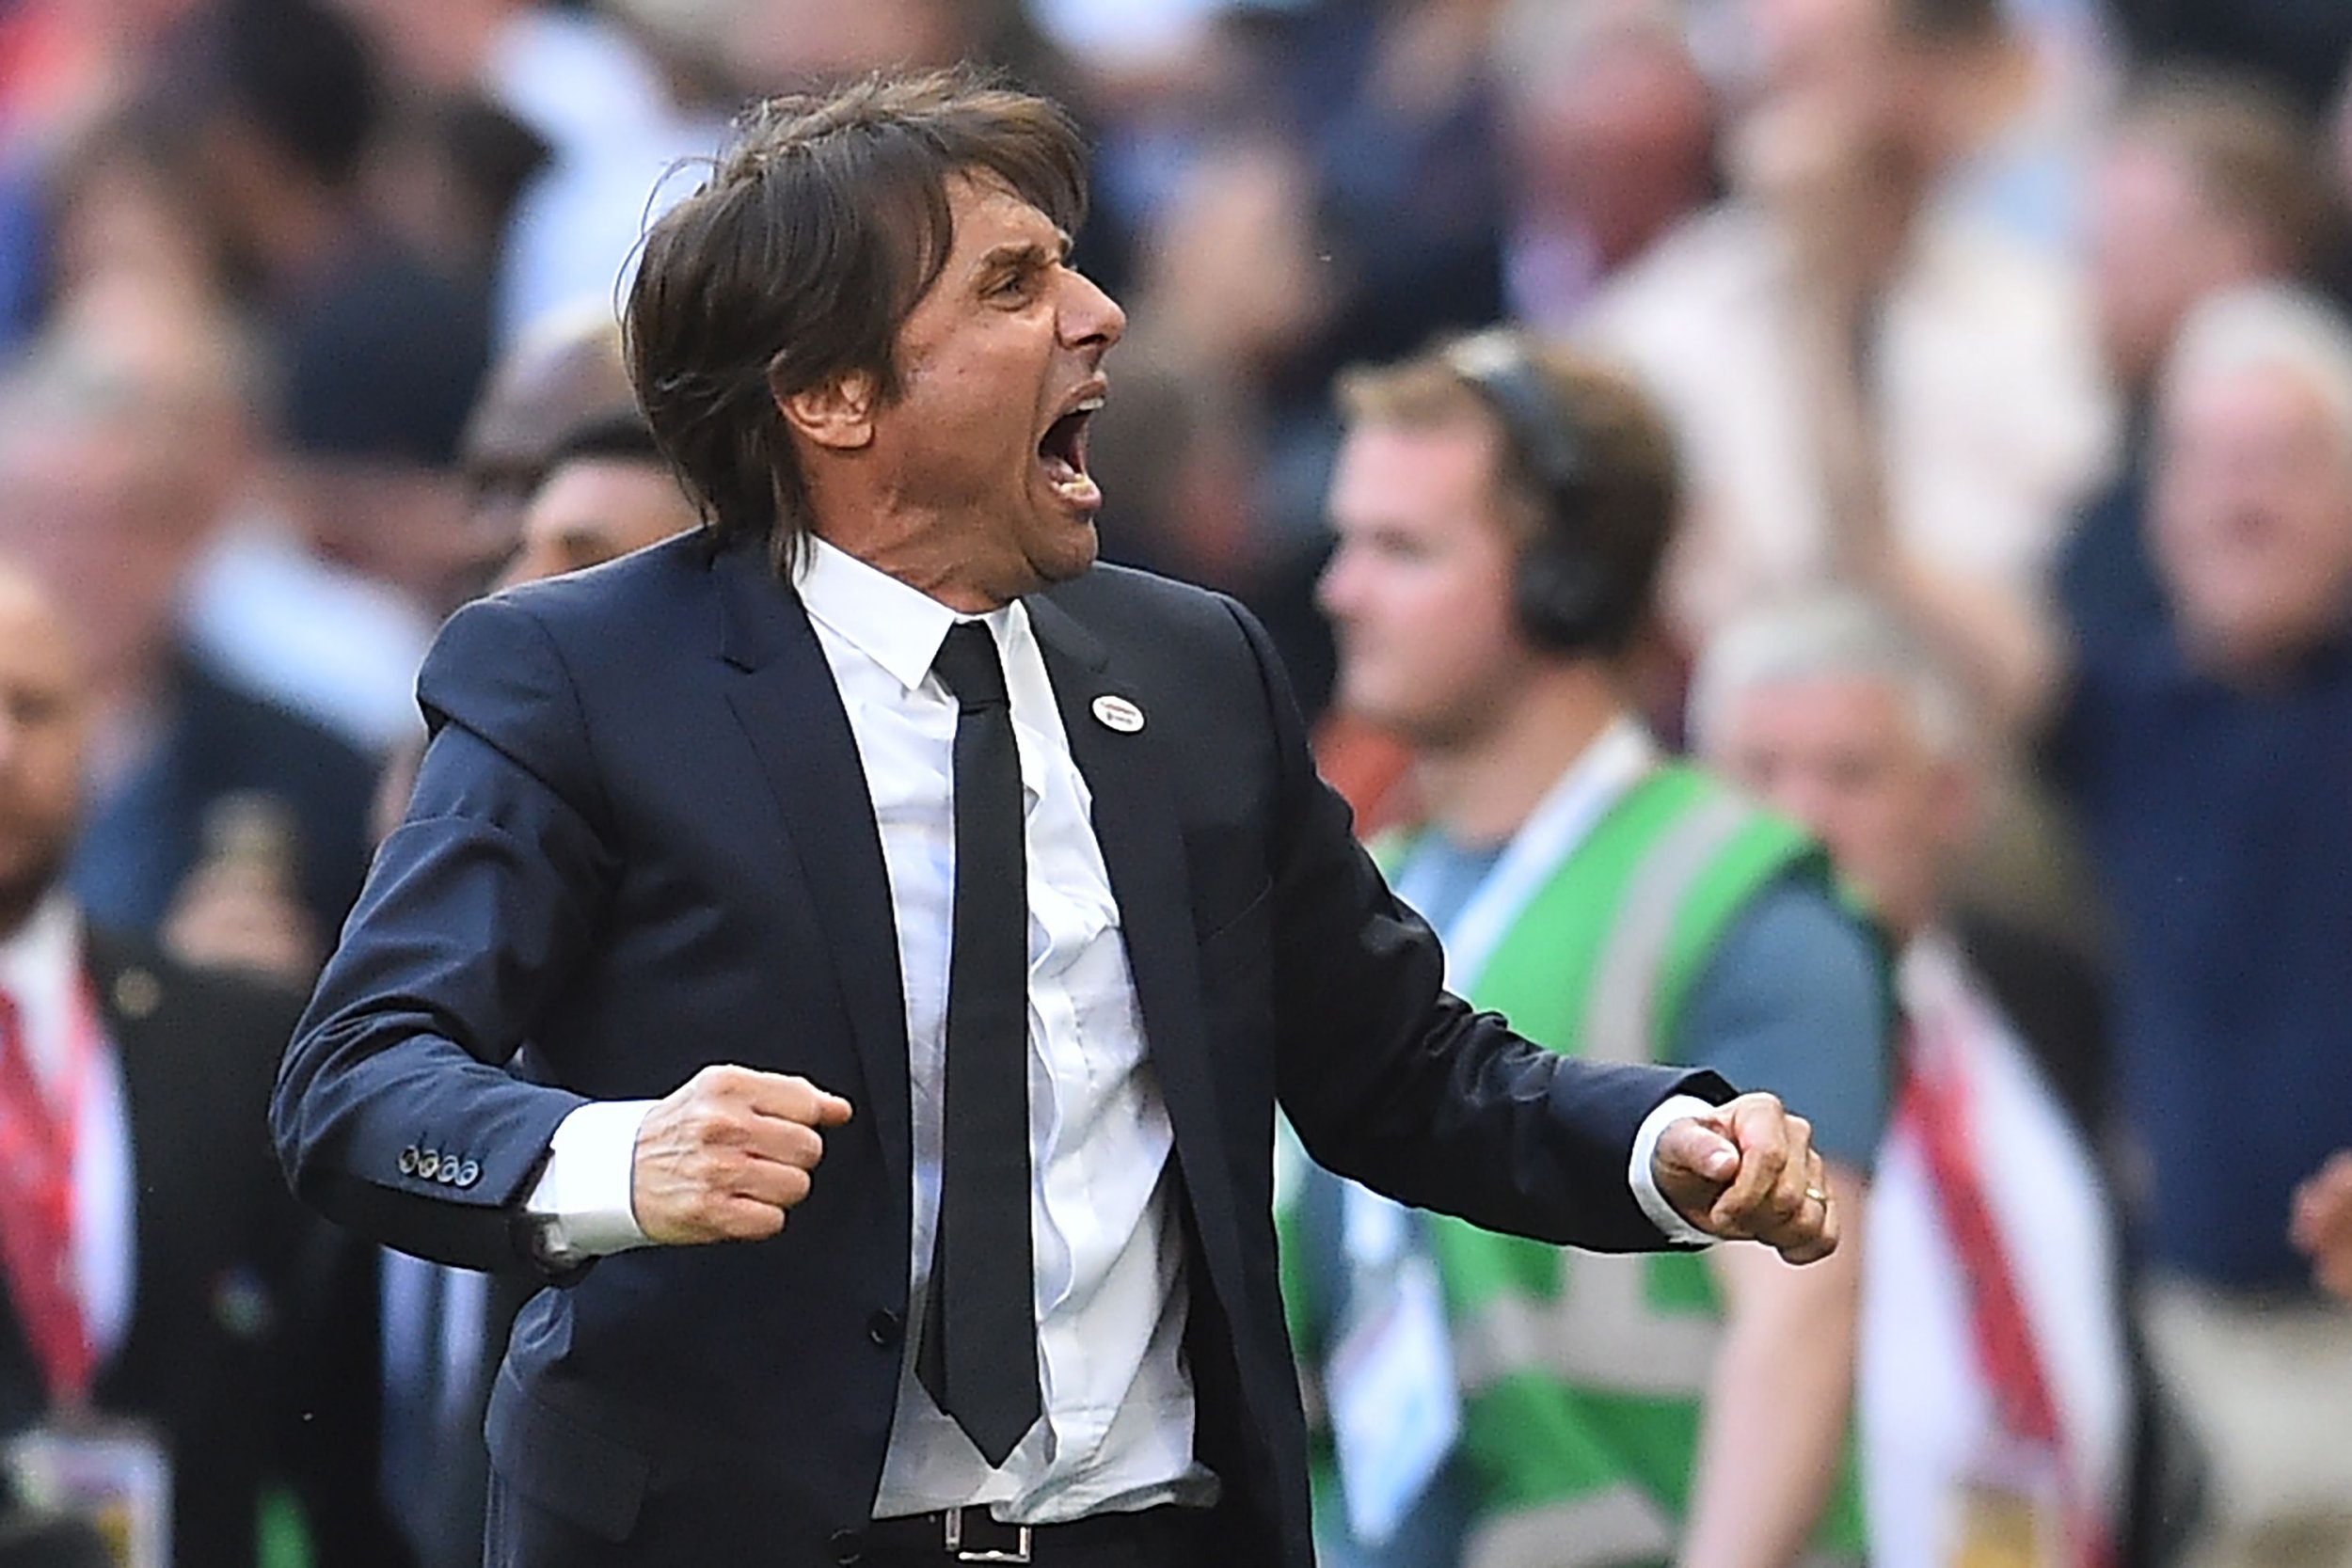 Chelsea's Italian head coach Antonio Conte reacts to their victory on the final whistle in the English FA Cup final football match between Chelsea and Manchester United at Wembley stadium in London on May 19, 2018. Chelsea won the game 1-0. / AFP PHOTO / Glyn KIRK / NOT FOR MARKETING OR ADVERTISING USE / RESTRICTED TO EDITORIAL USEGLYN KIRK/AFP/Getty Images